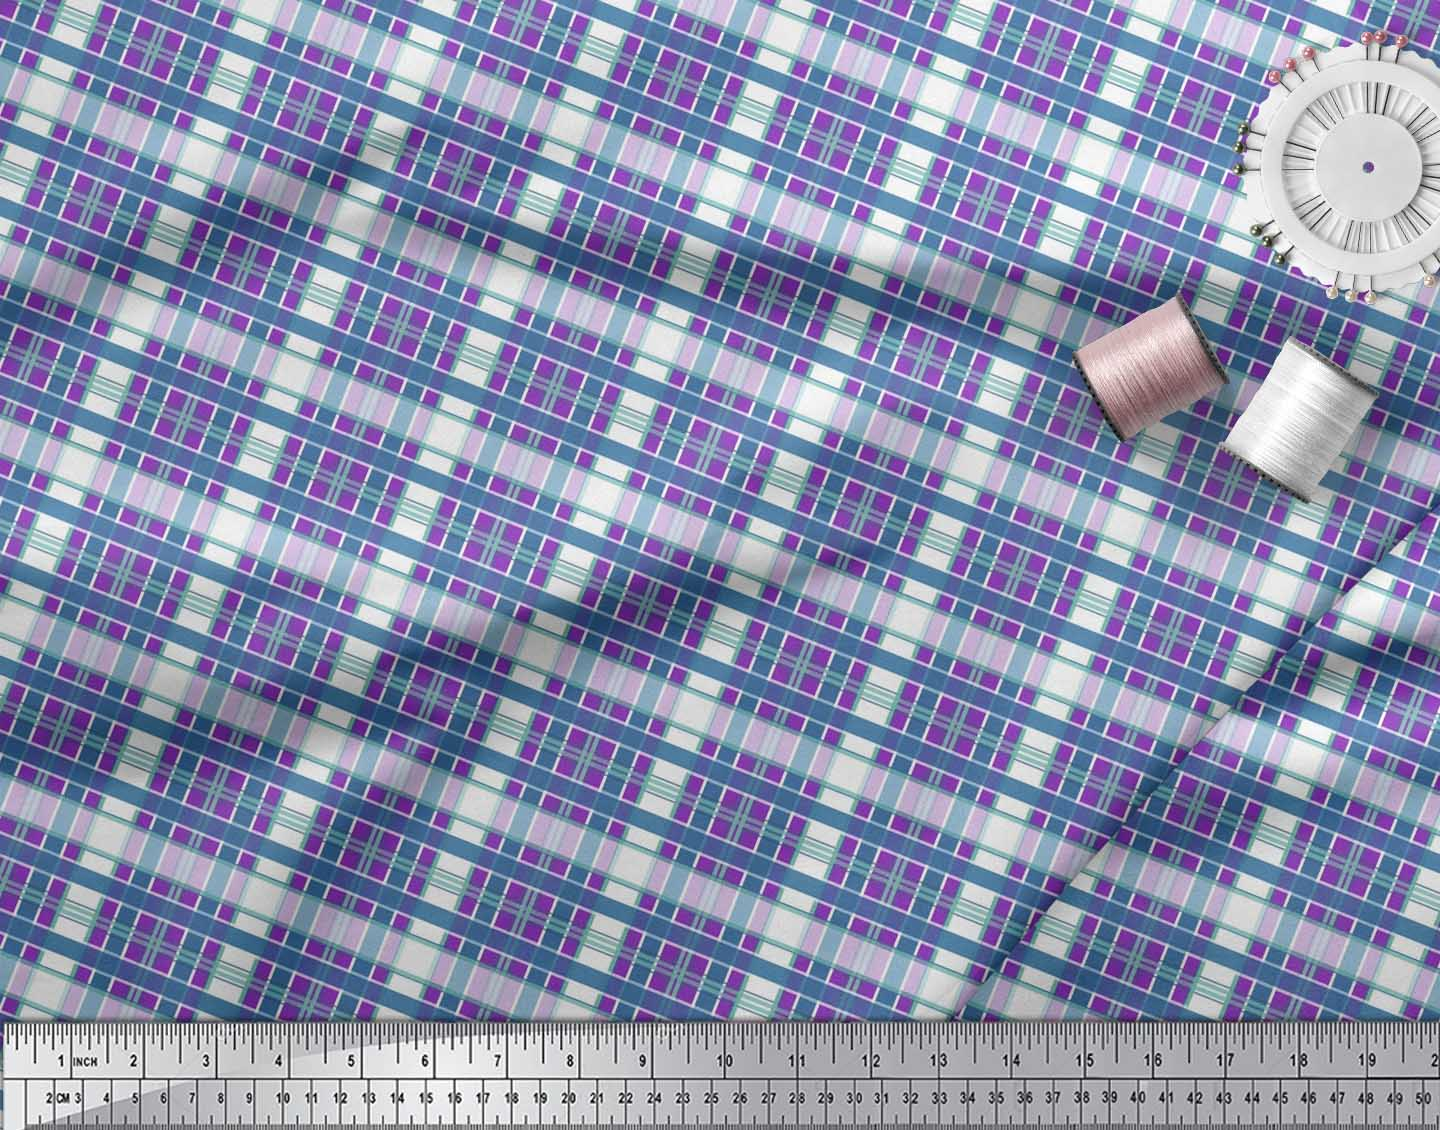 Soimoi-Cotton-Poplin-Fabric-Check-Check-Print-Sewing-Fabric-metre-Tay thumbnail 3